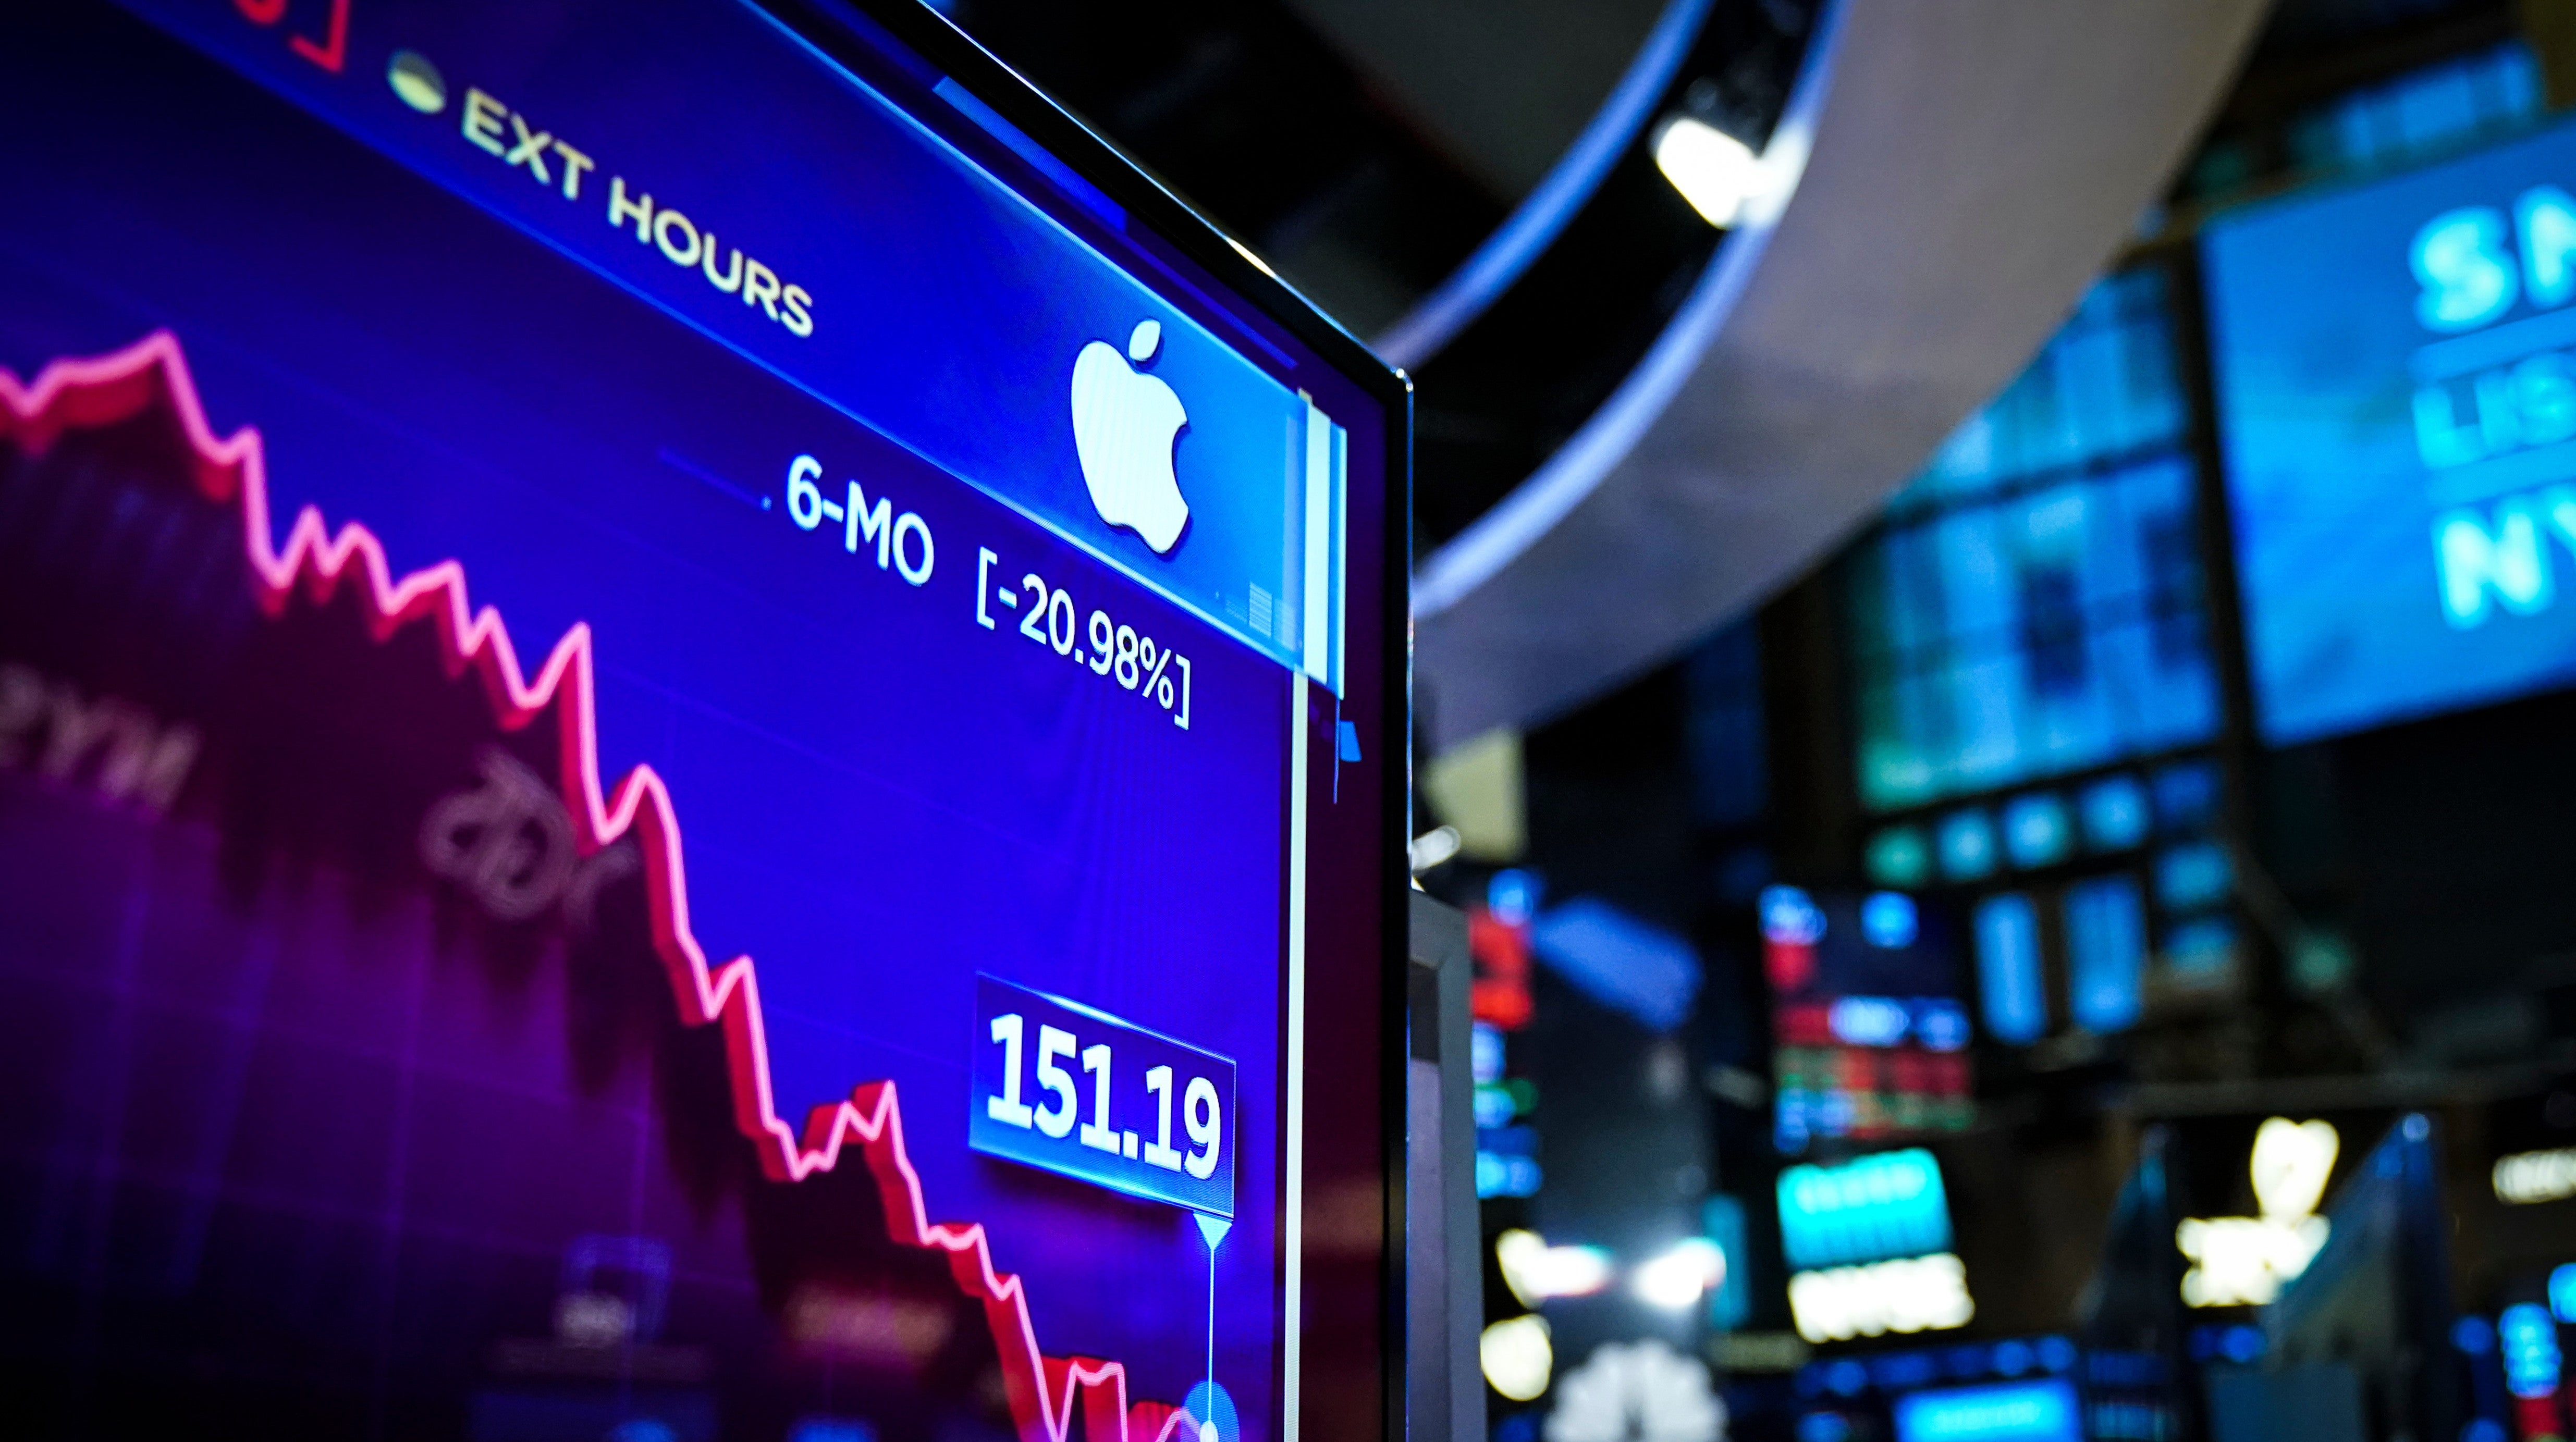 Former Apple Lawyer Tasked With Blocking Insider Trading Indicted On Charges Of Insider Trading